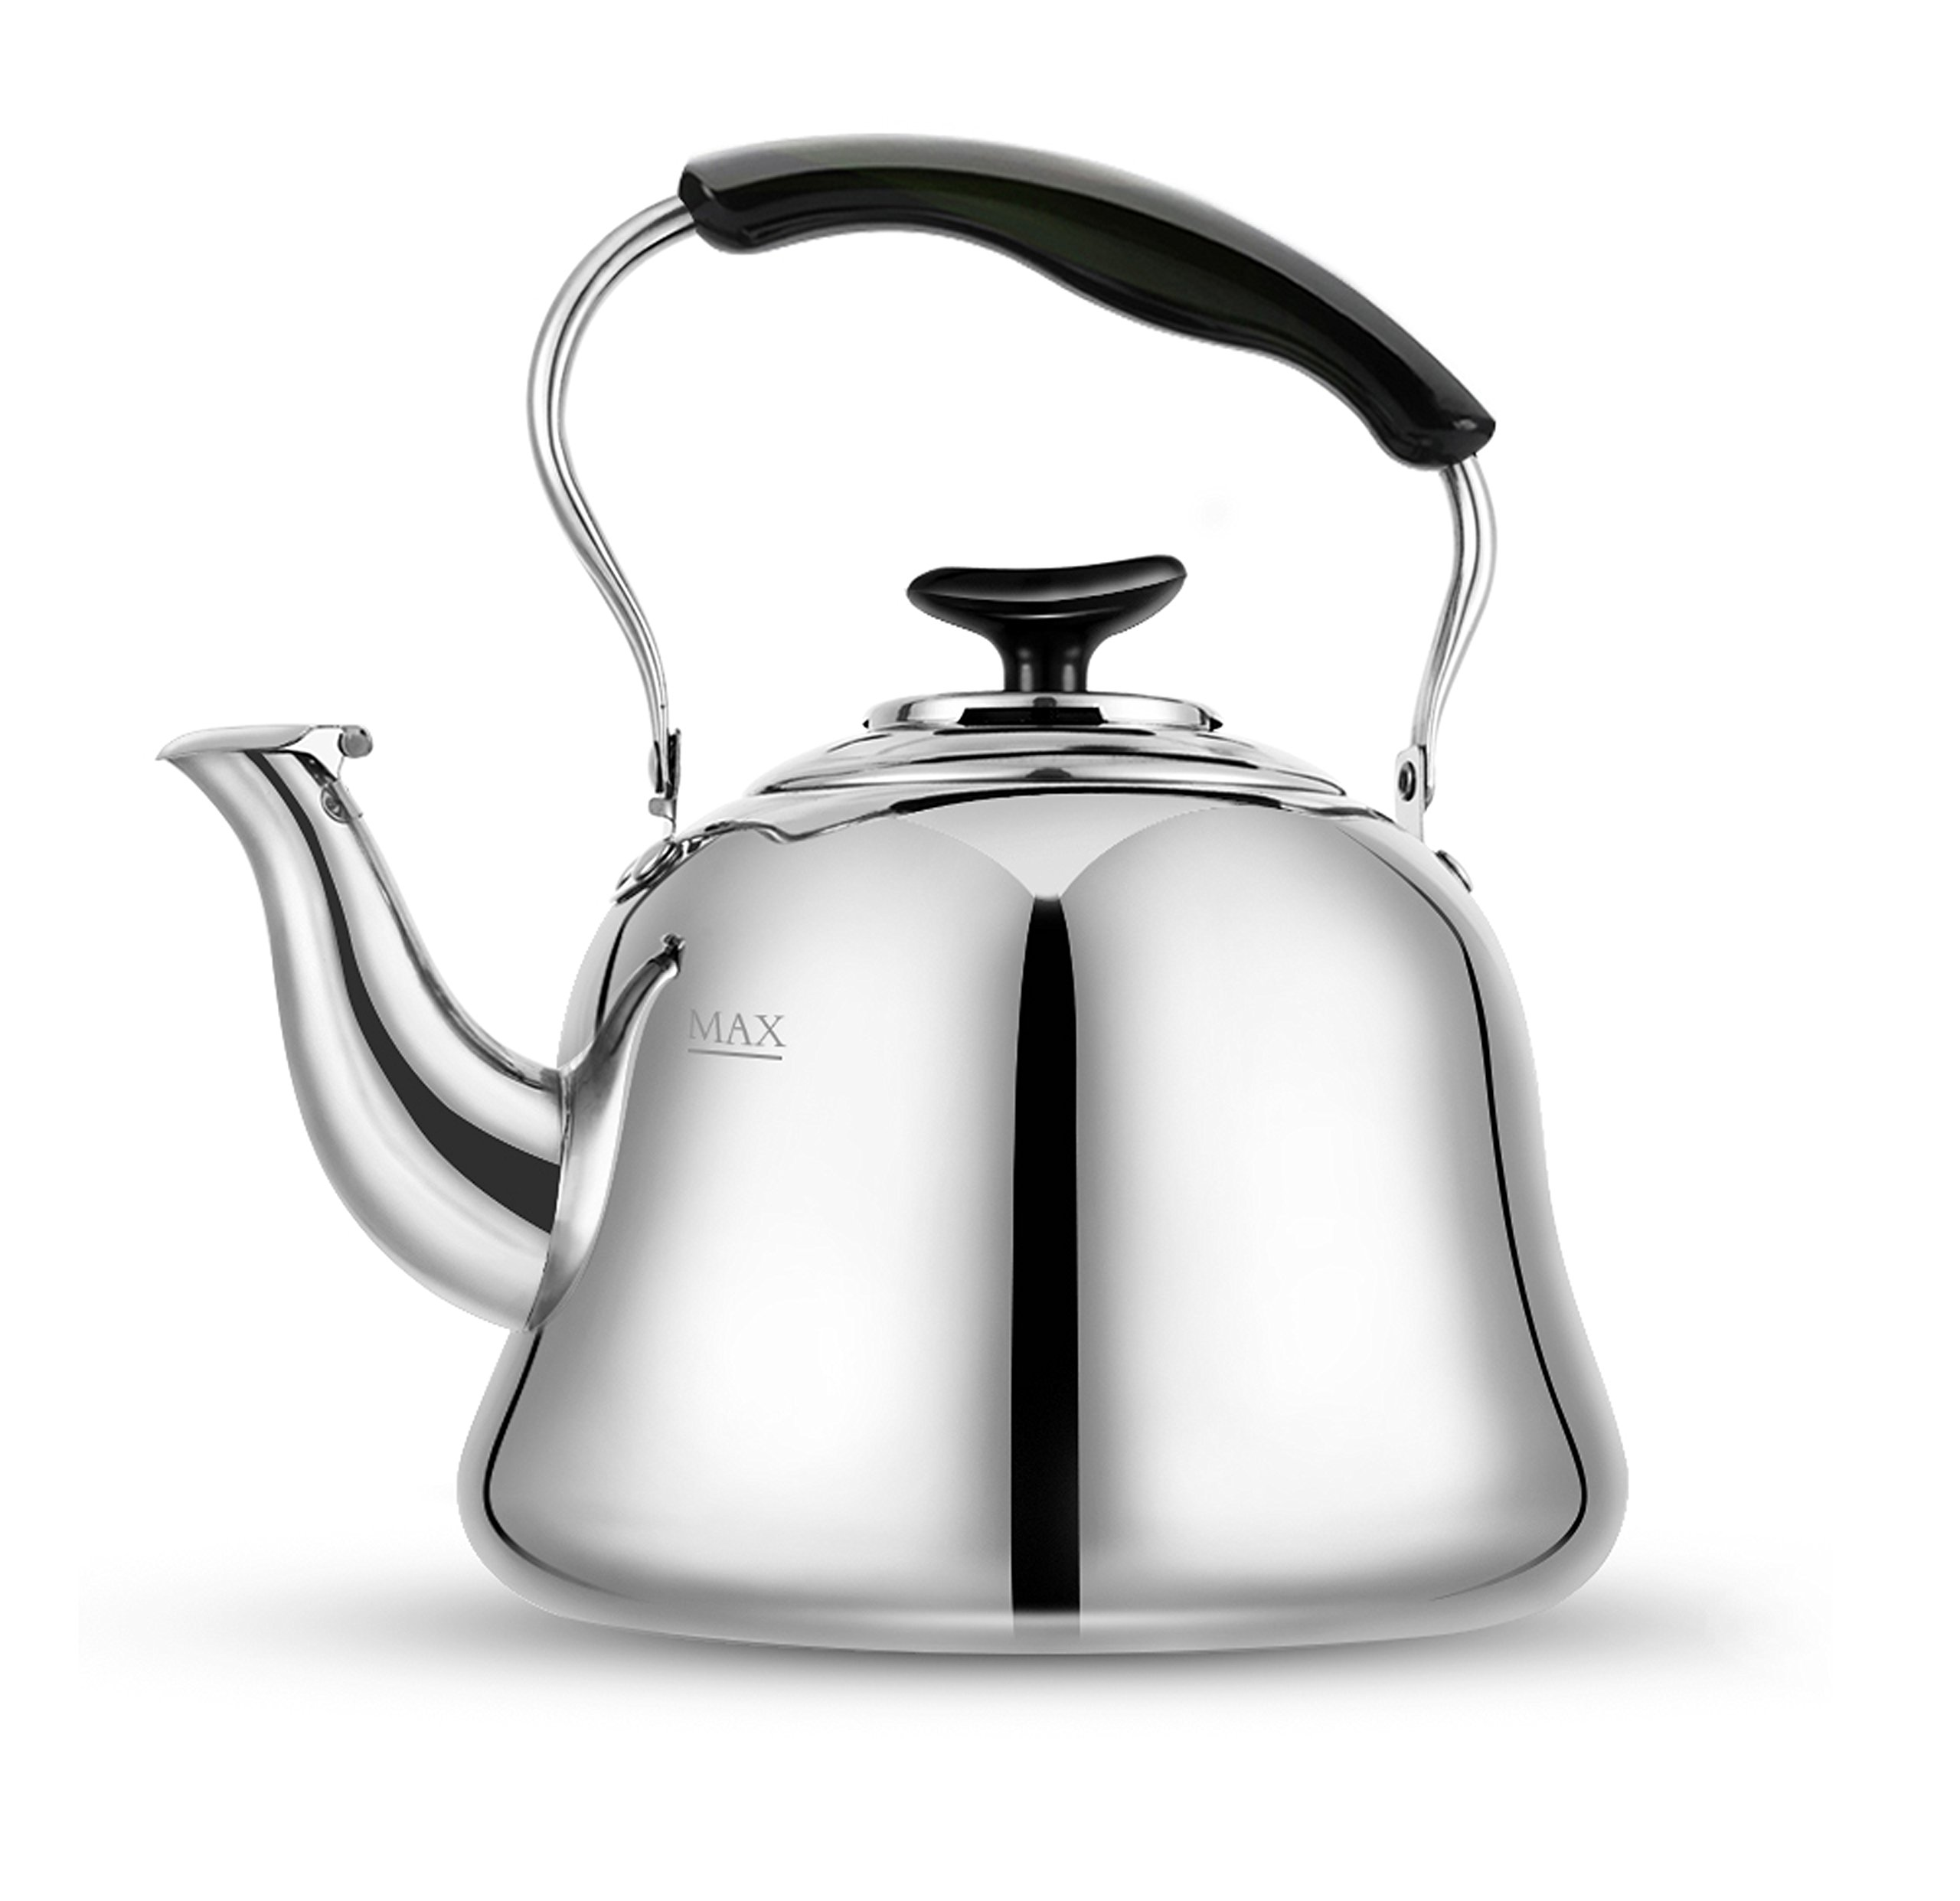 Tea Kettle Stovetop Whistling Teakettle Teapot, Stainless Steel, Thin Base, Mirror Finish, 2 liters by AMFOCUS